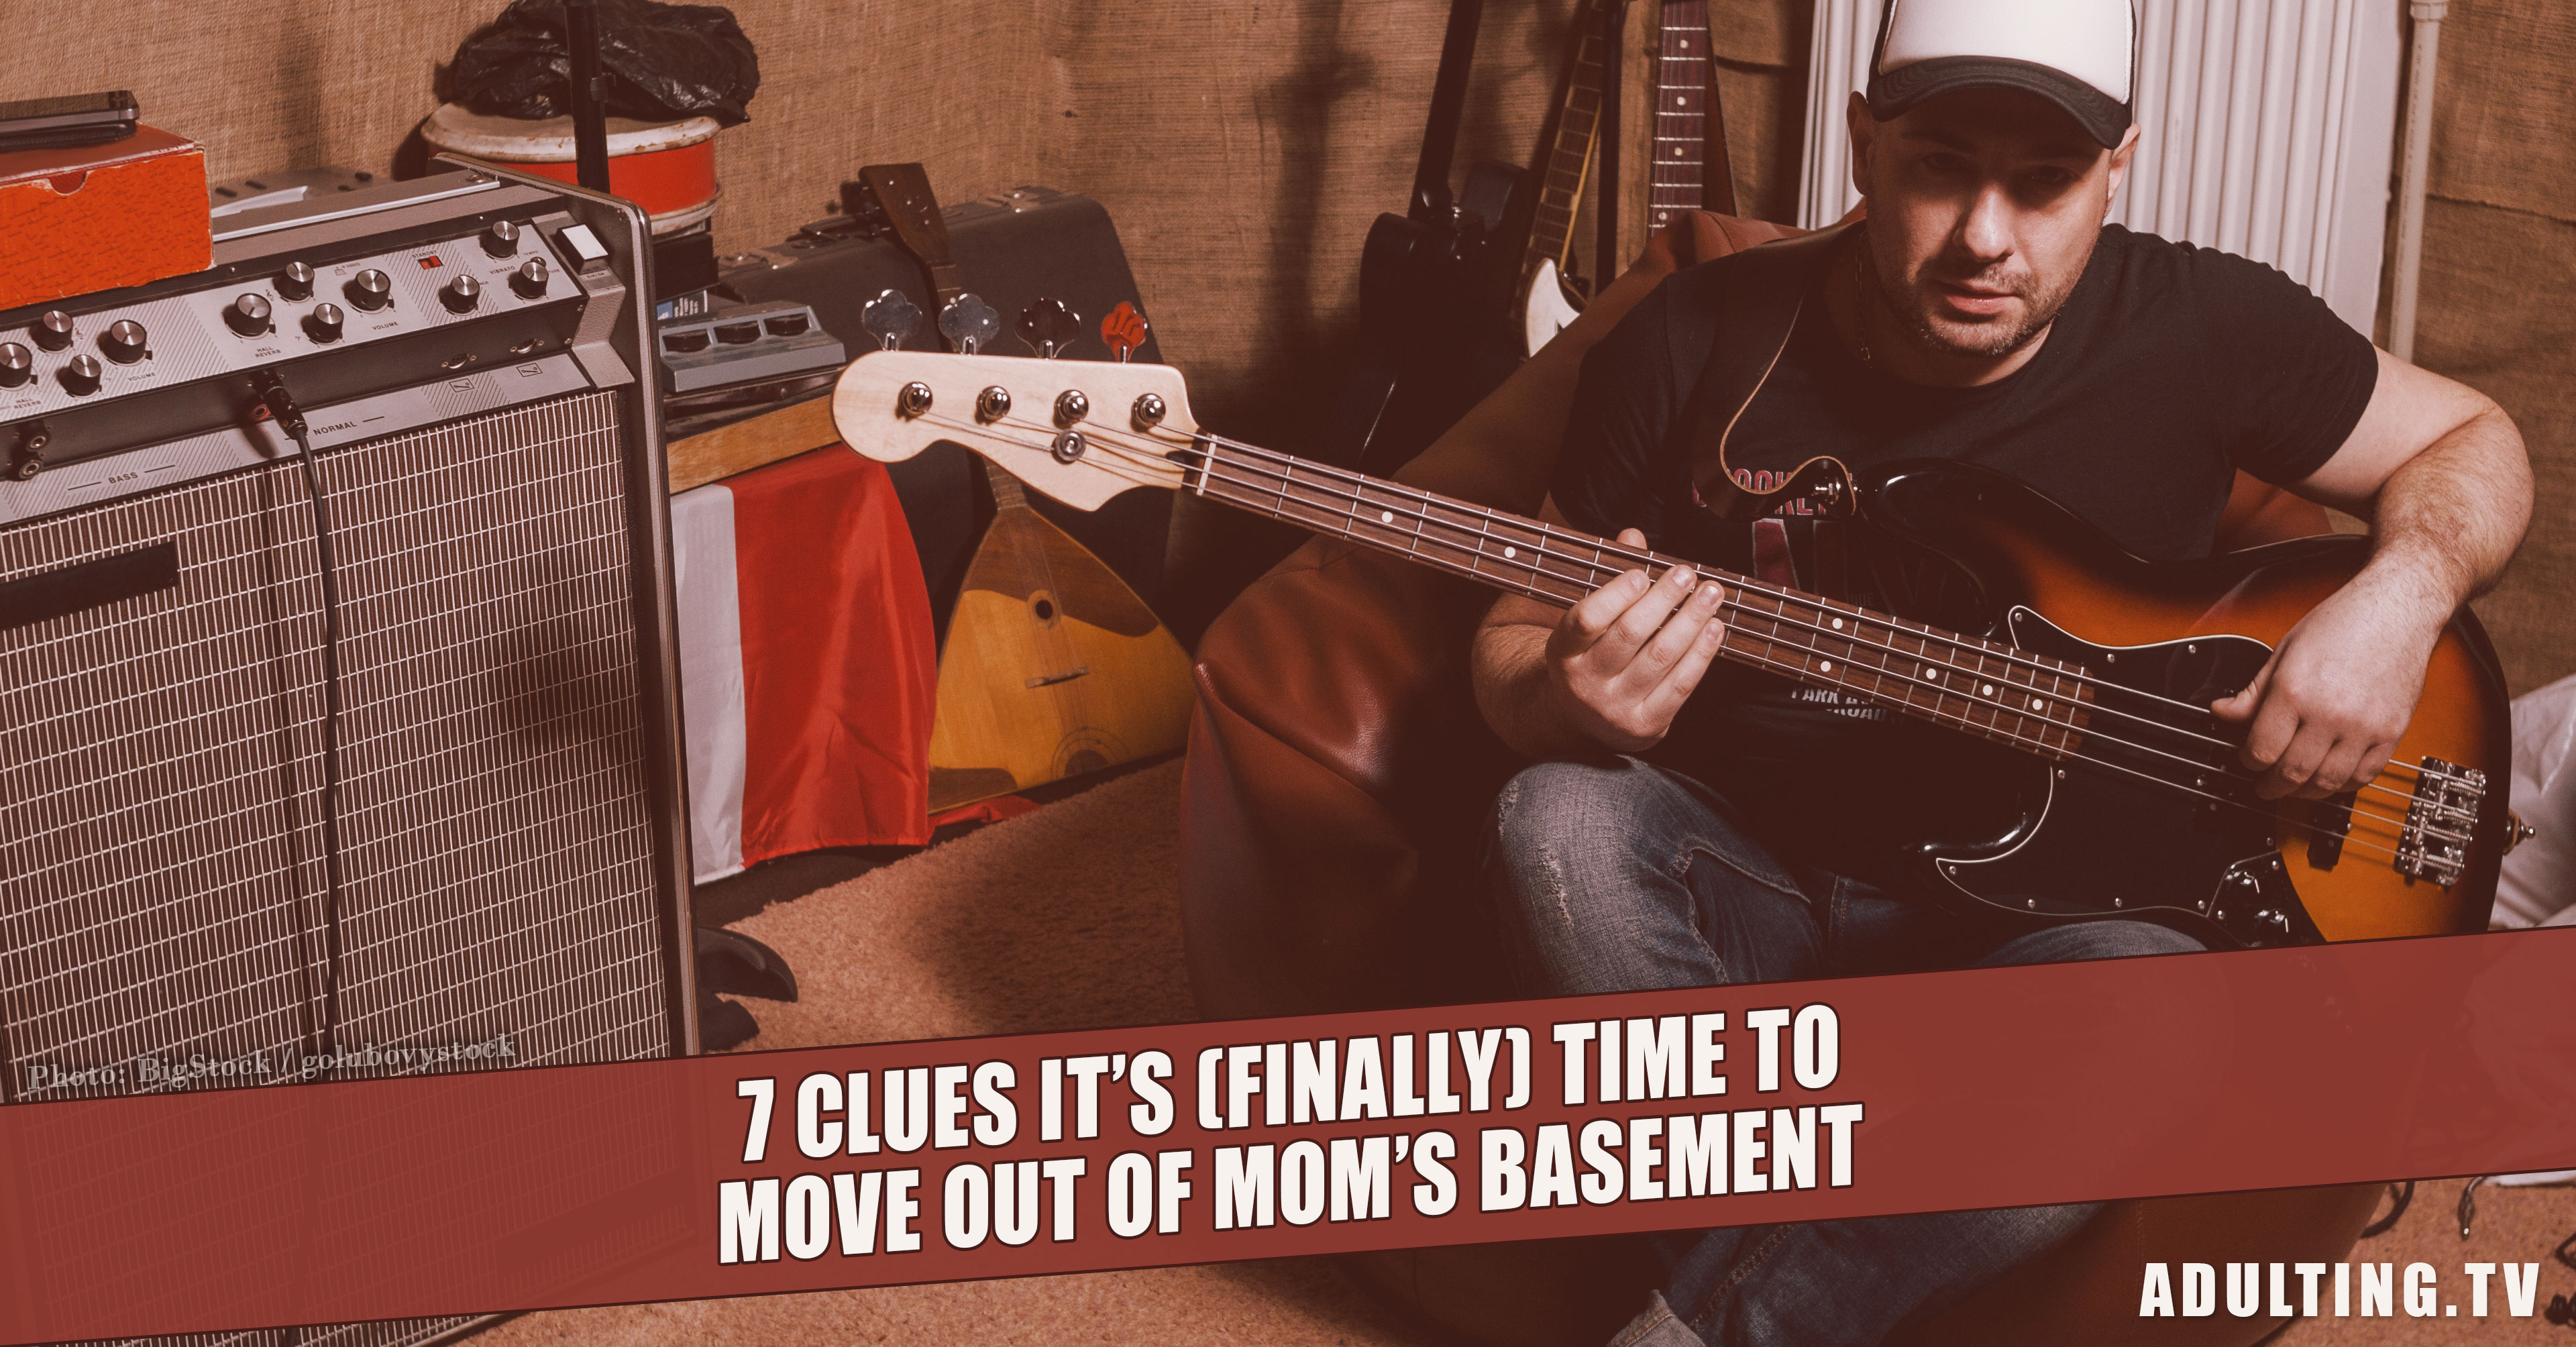 7 Clues It s Finally Time to Move Out of Mom s Basement